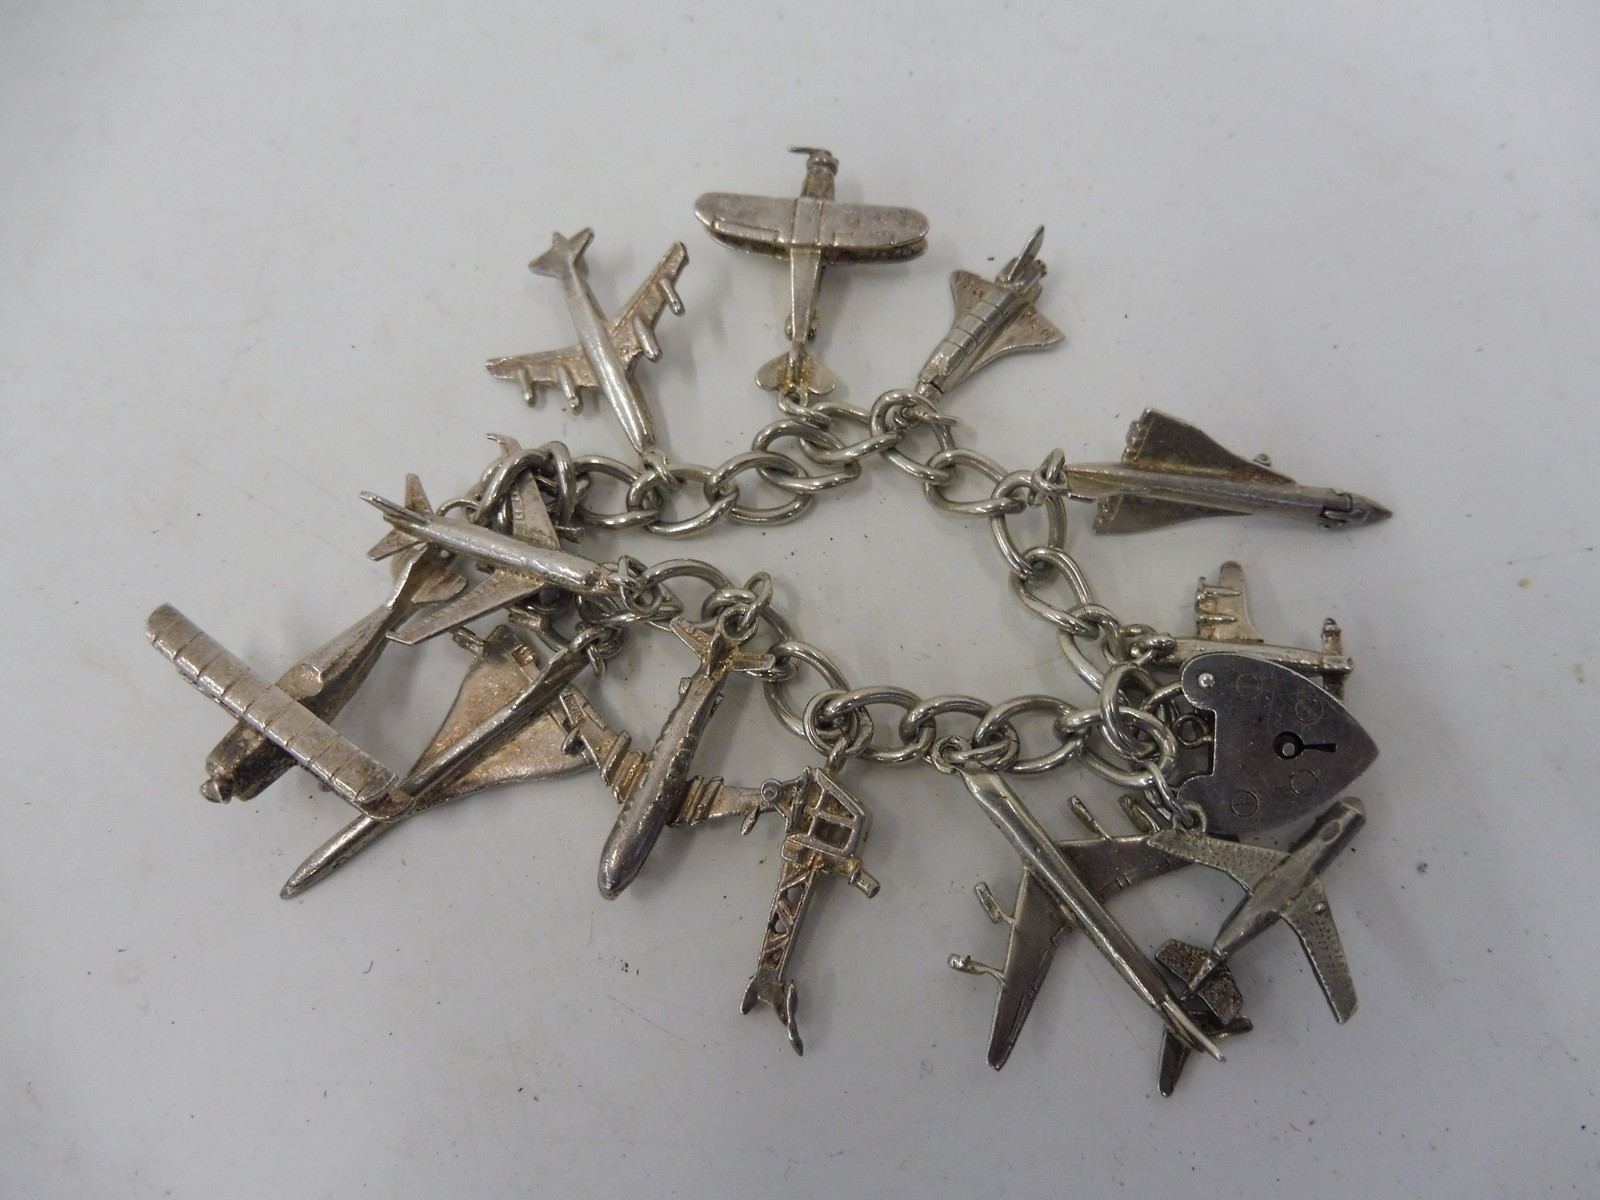 Lot 28 - A silver charm bracelet comprising 12 miniature aeroplanes and a padlock, the charms include